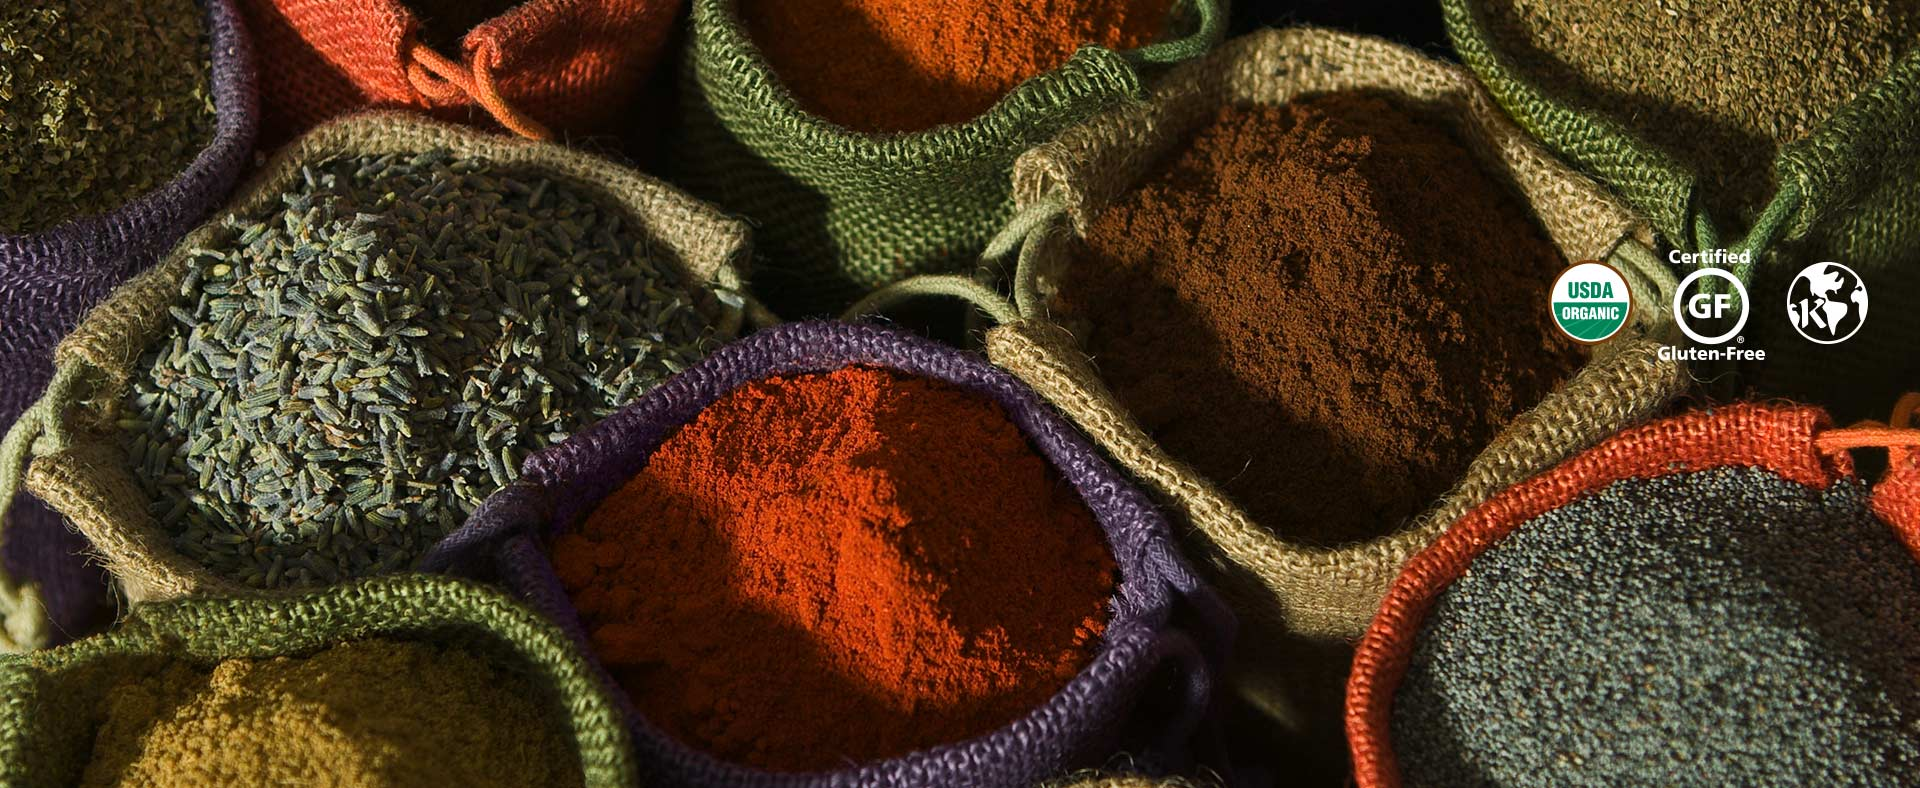 Fresh organic spices in colorful burlap bags